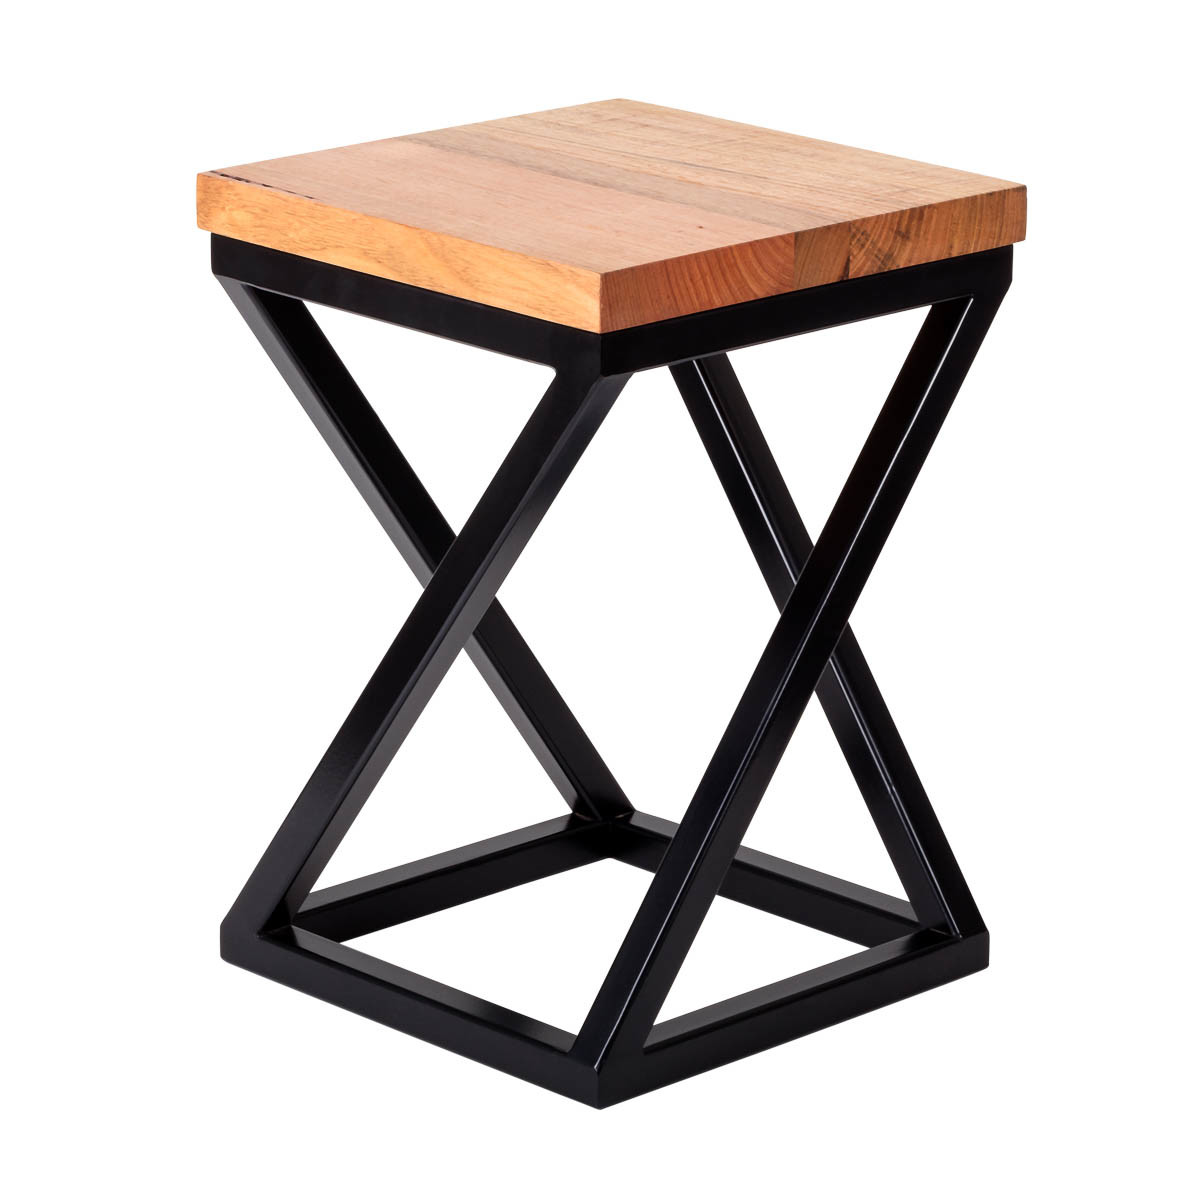 Furniture stools Hairpin Legs Stool diagonal bar black 90 degree view square top